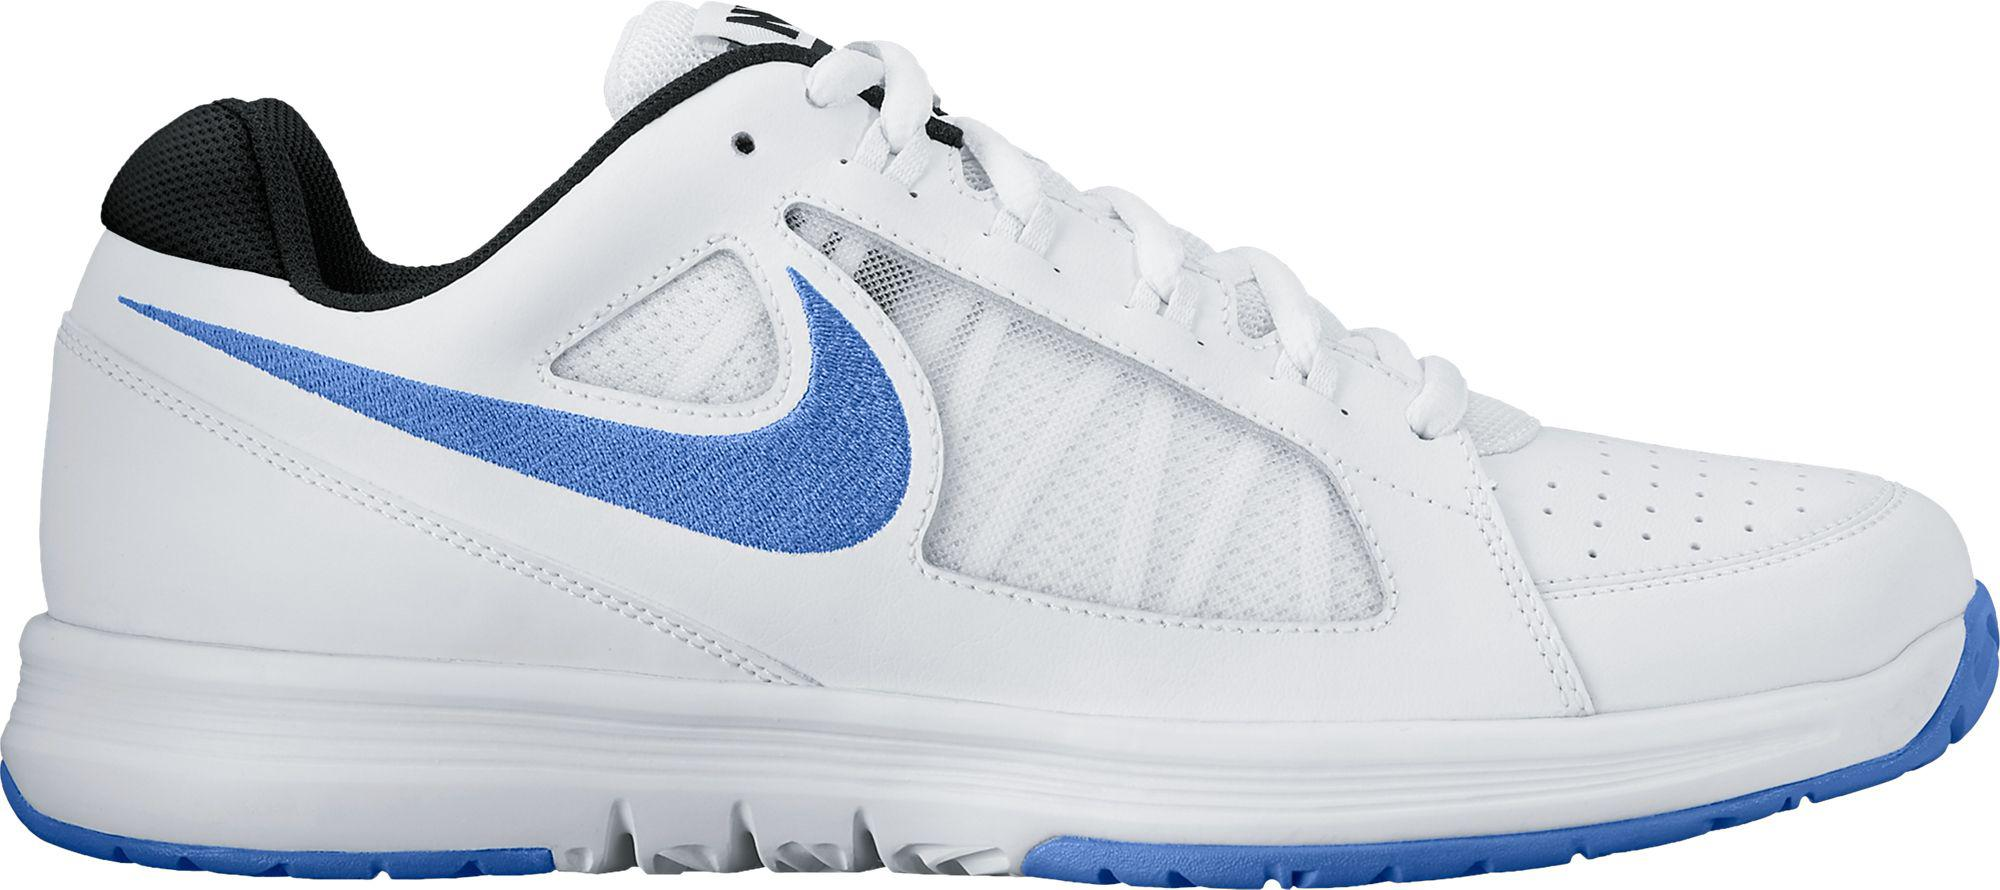 80e29644f3f59 Lyst - Nike Air Vapor Ace Tennis Shoes in White for Men